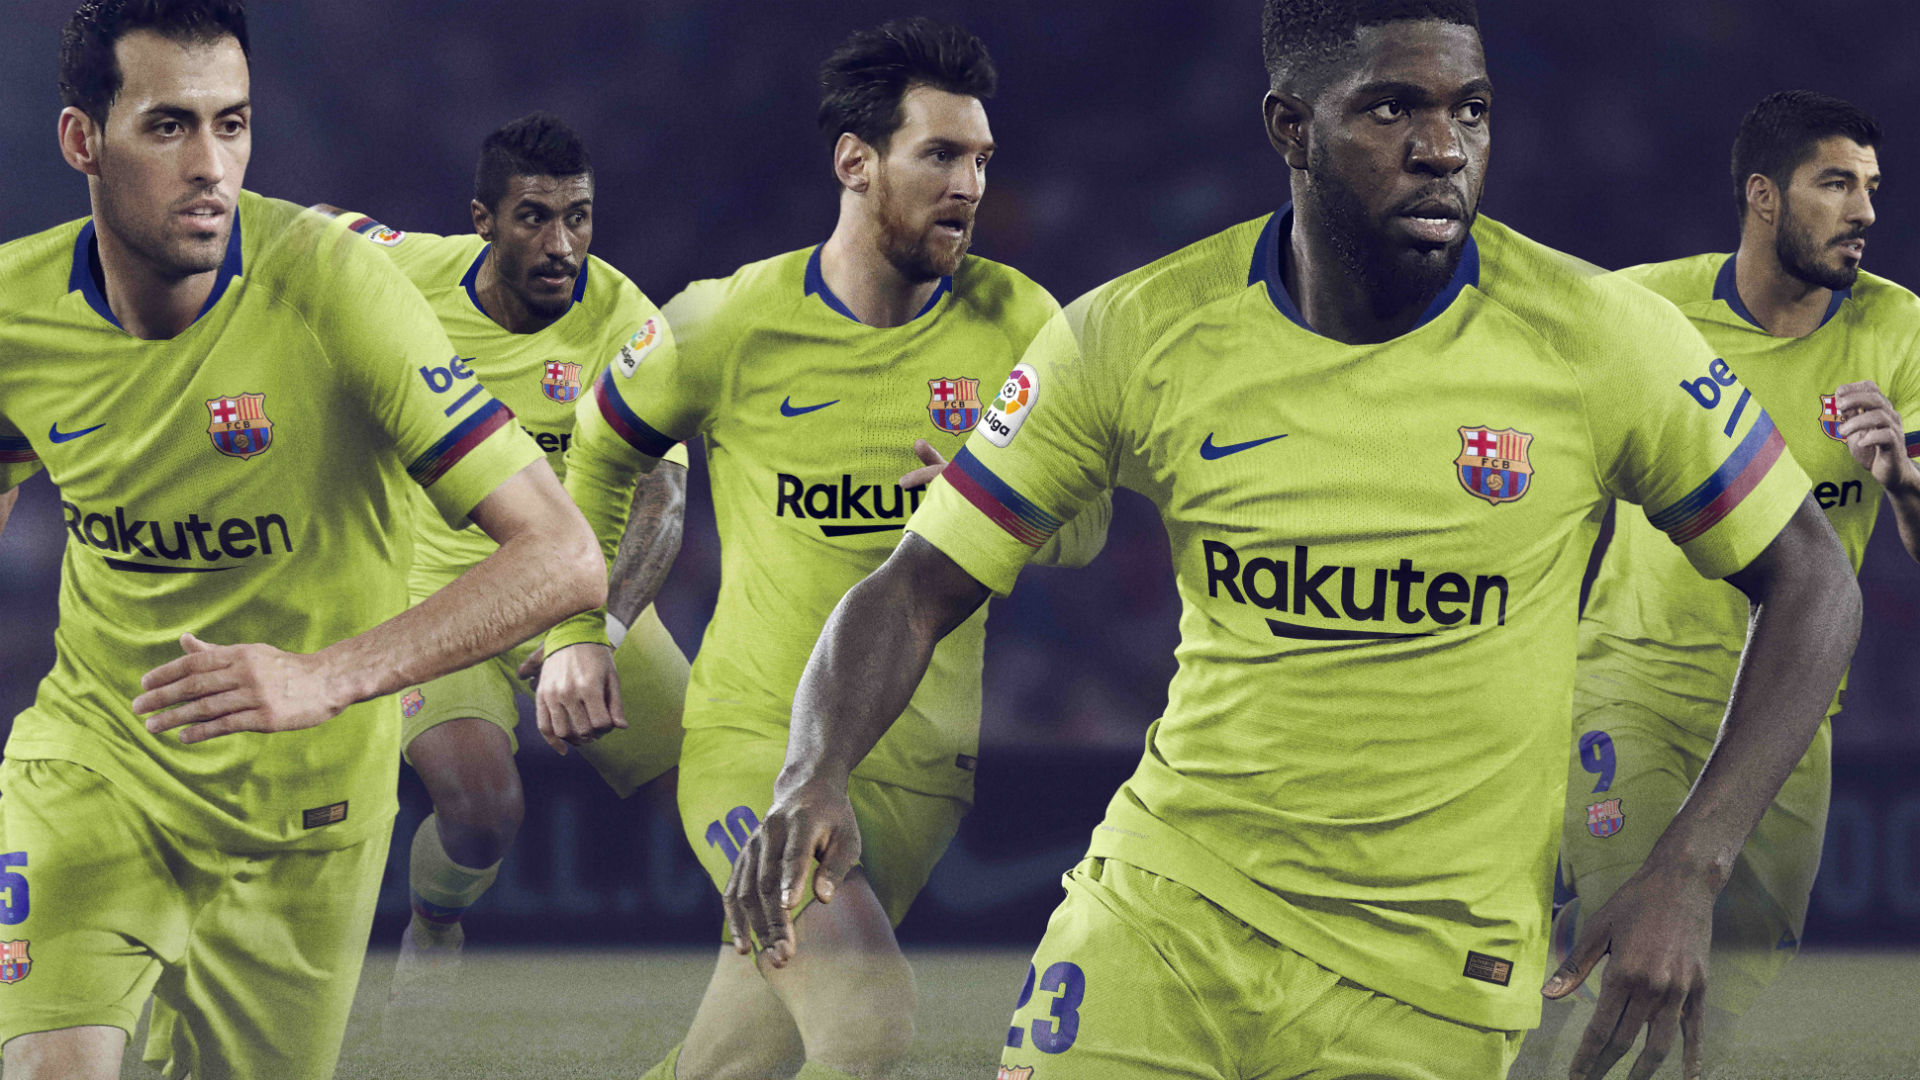 https://images.performgroup.com/di/library/GOAL/28/a5/barcelona-2018-19-away-kit_atf0l8a4ly7t13q6t250ercgl.jpg?t=1510054788&quality=100